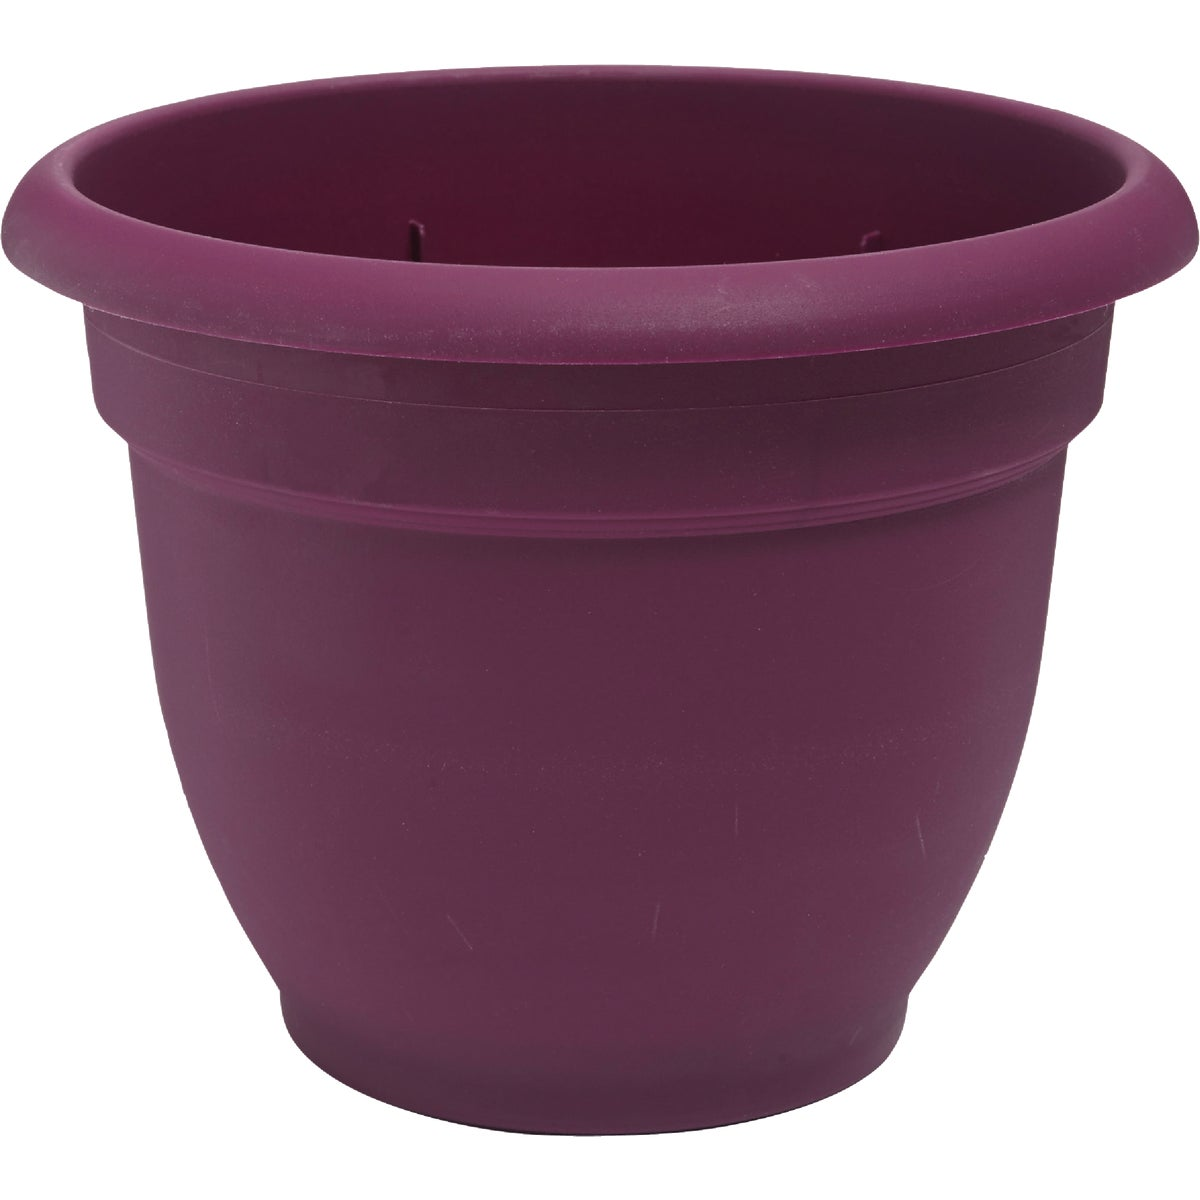 "12"" RYL LILAC ARIANA POT - 462121-1001 by Fiskars Brands Inc"